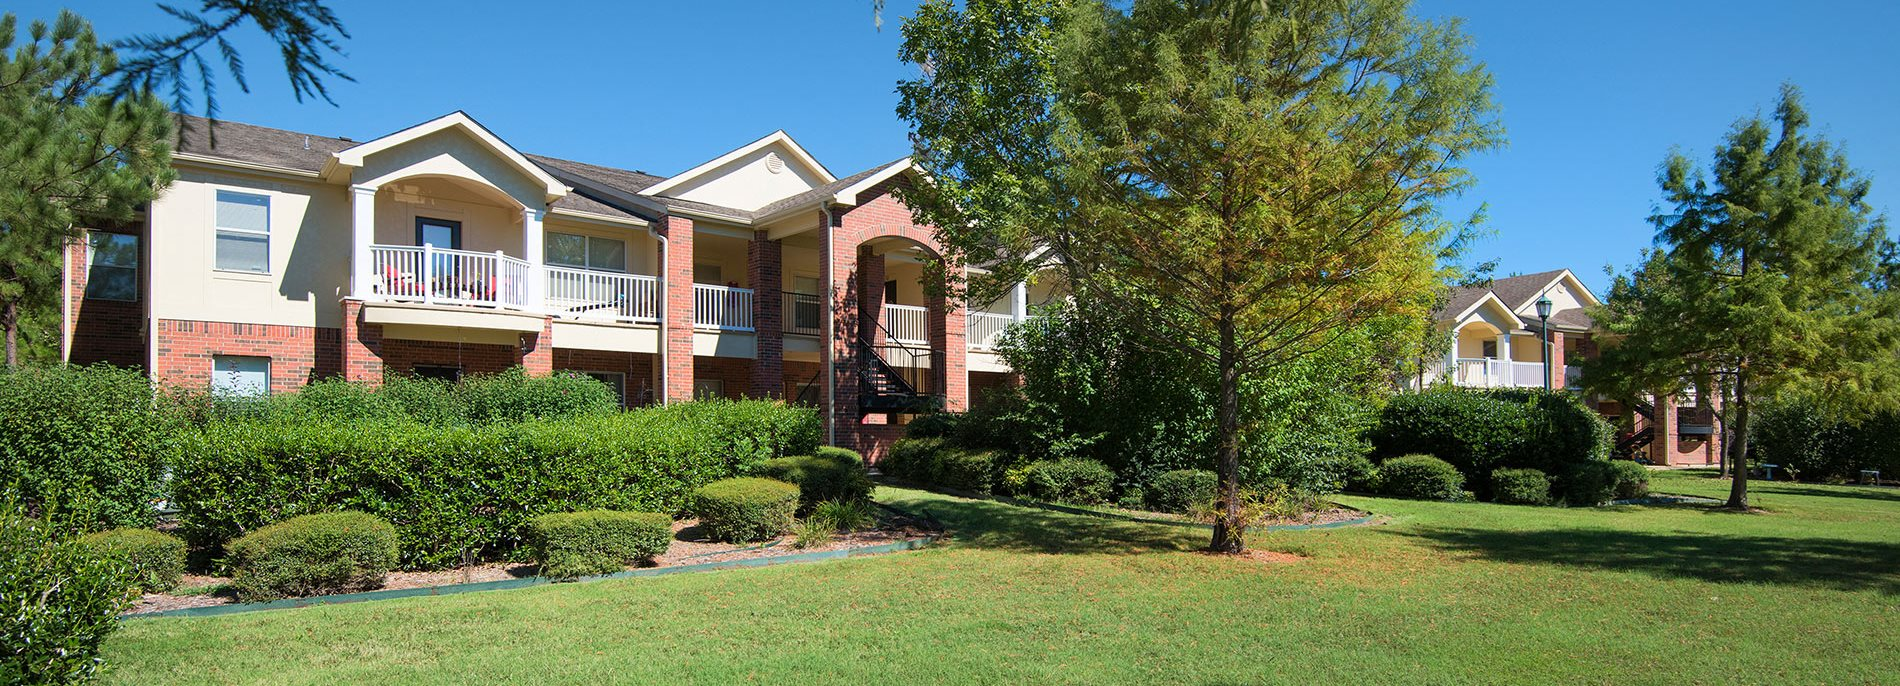 The Cliffs Ii Apartments In Fayetteville Ar